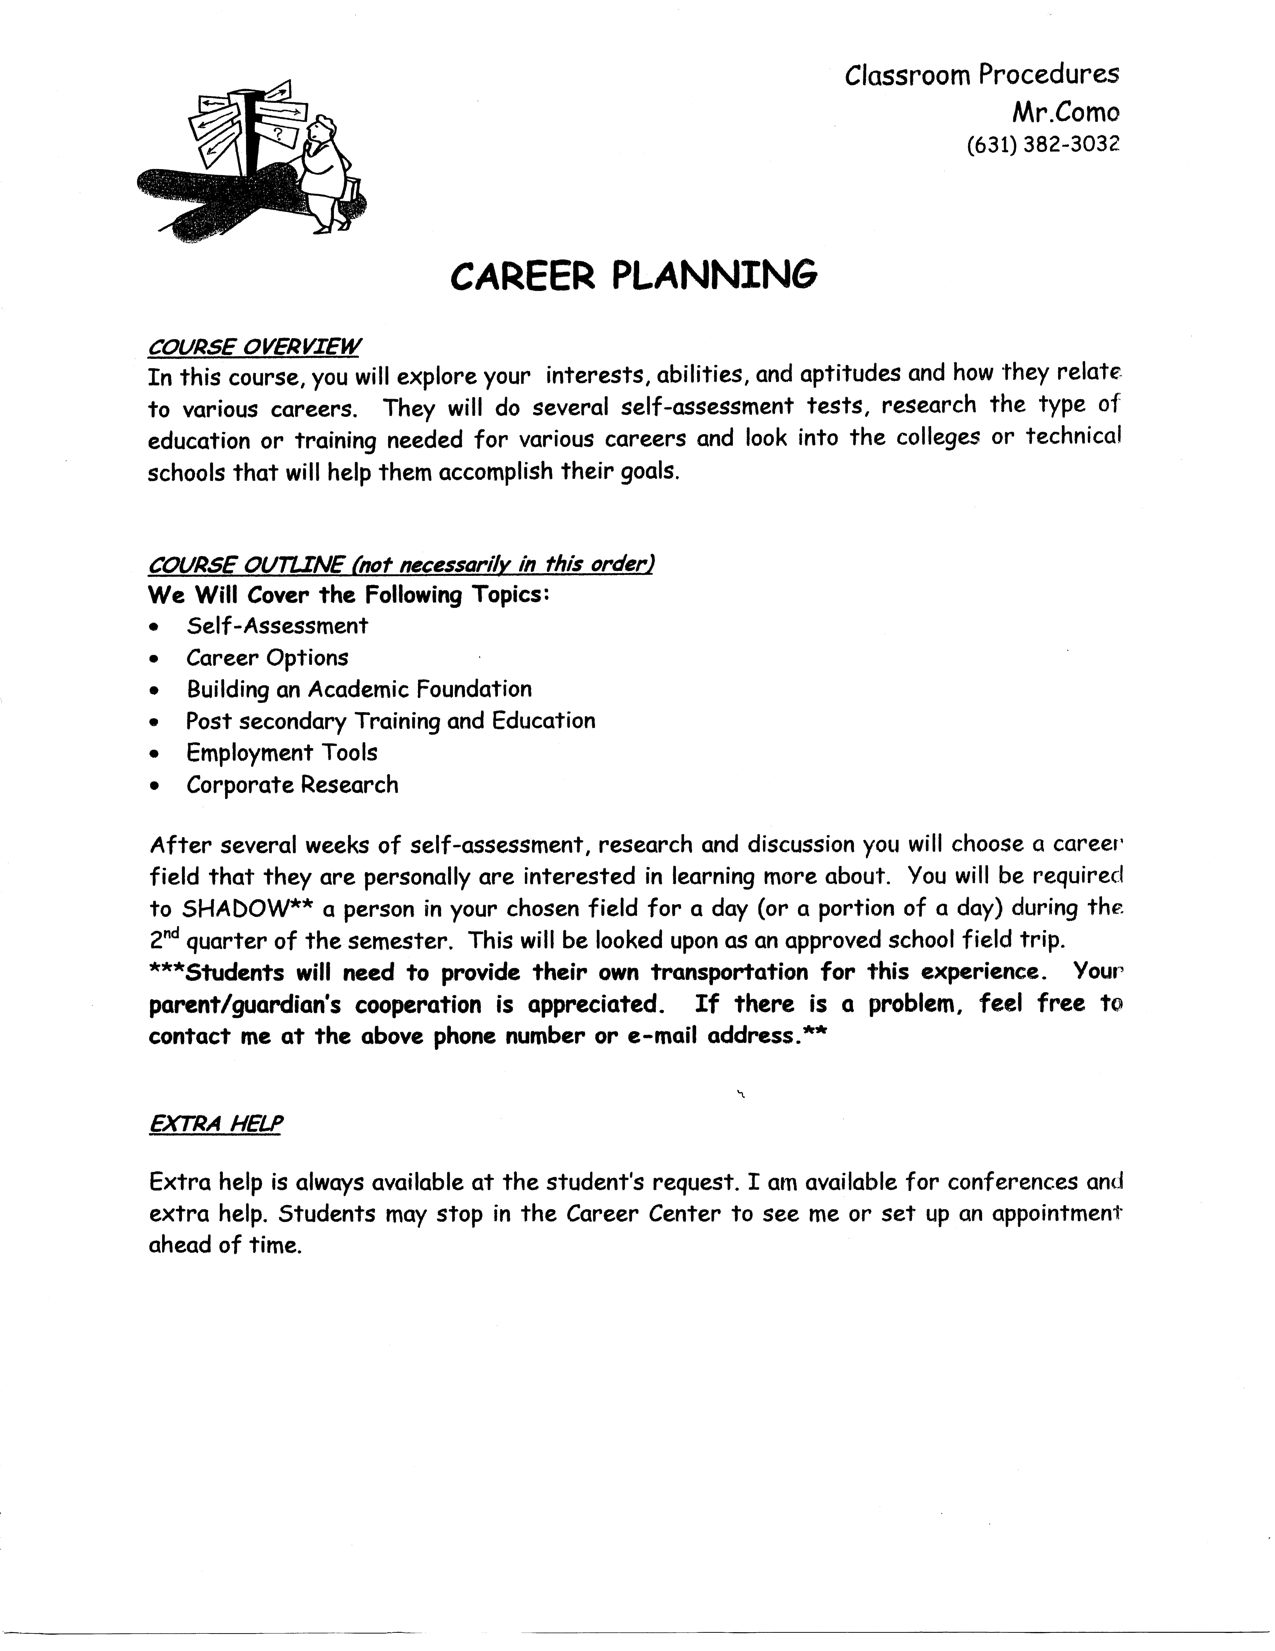 Career Planning Outline